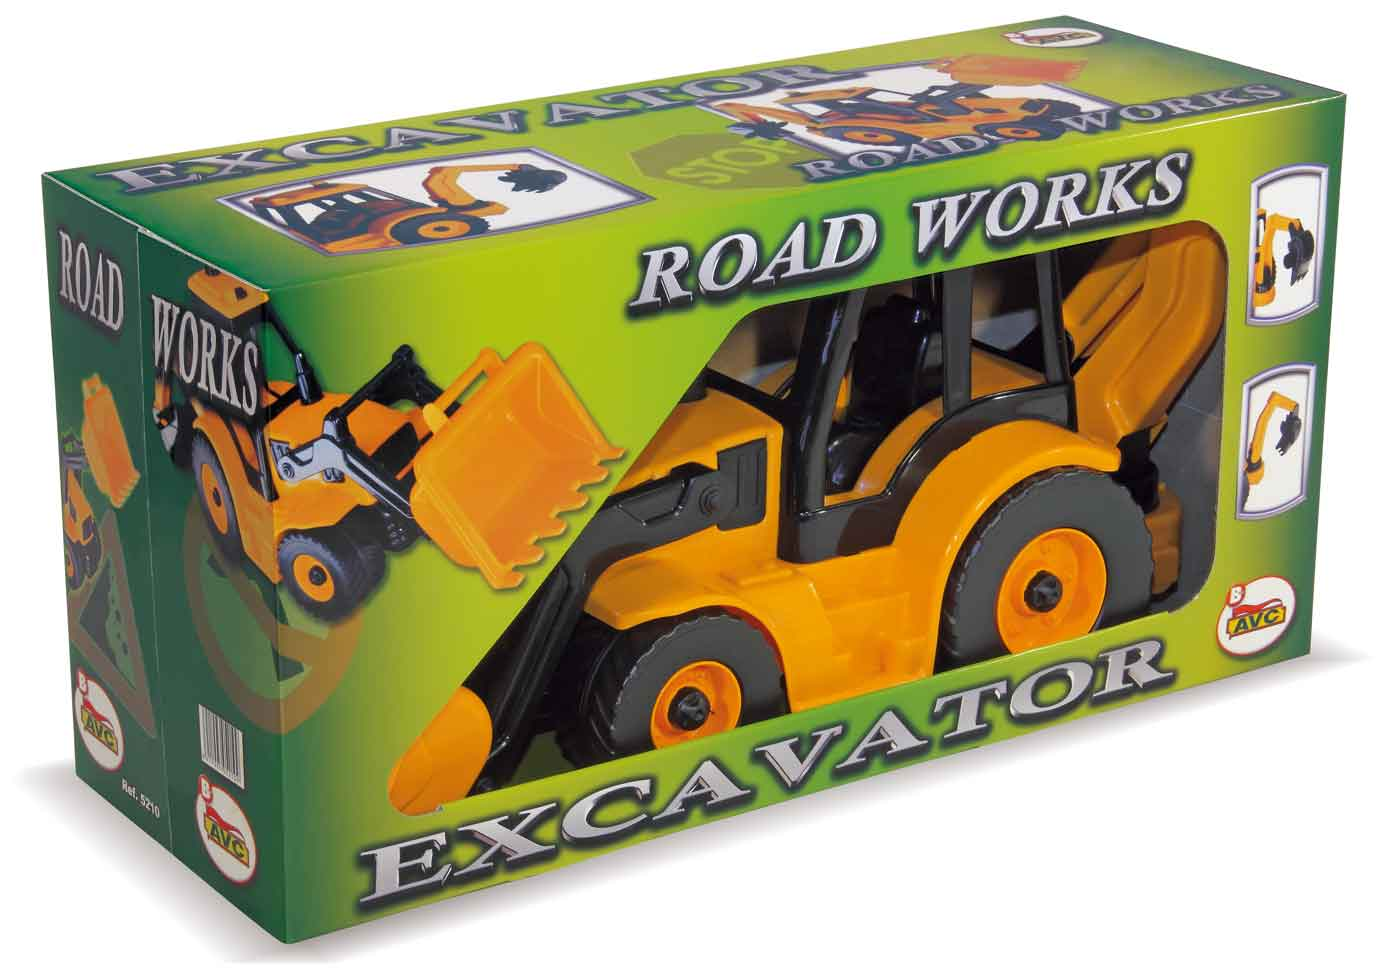 EXCAVADORA RETRO ROAD WORK 5210 - V10920